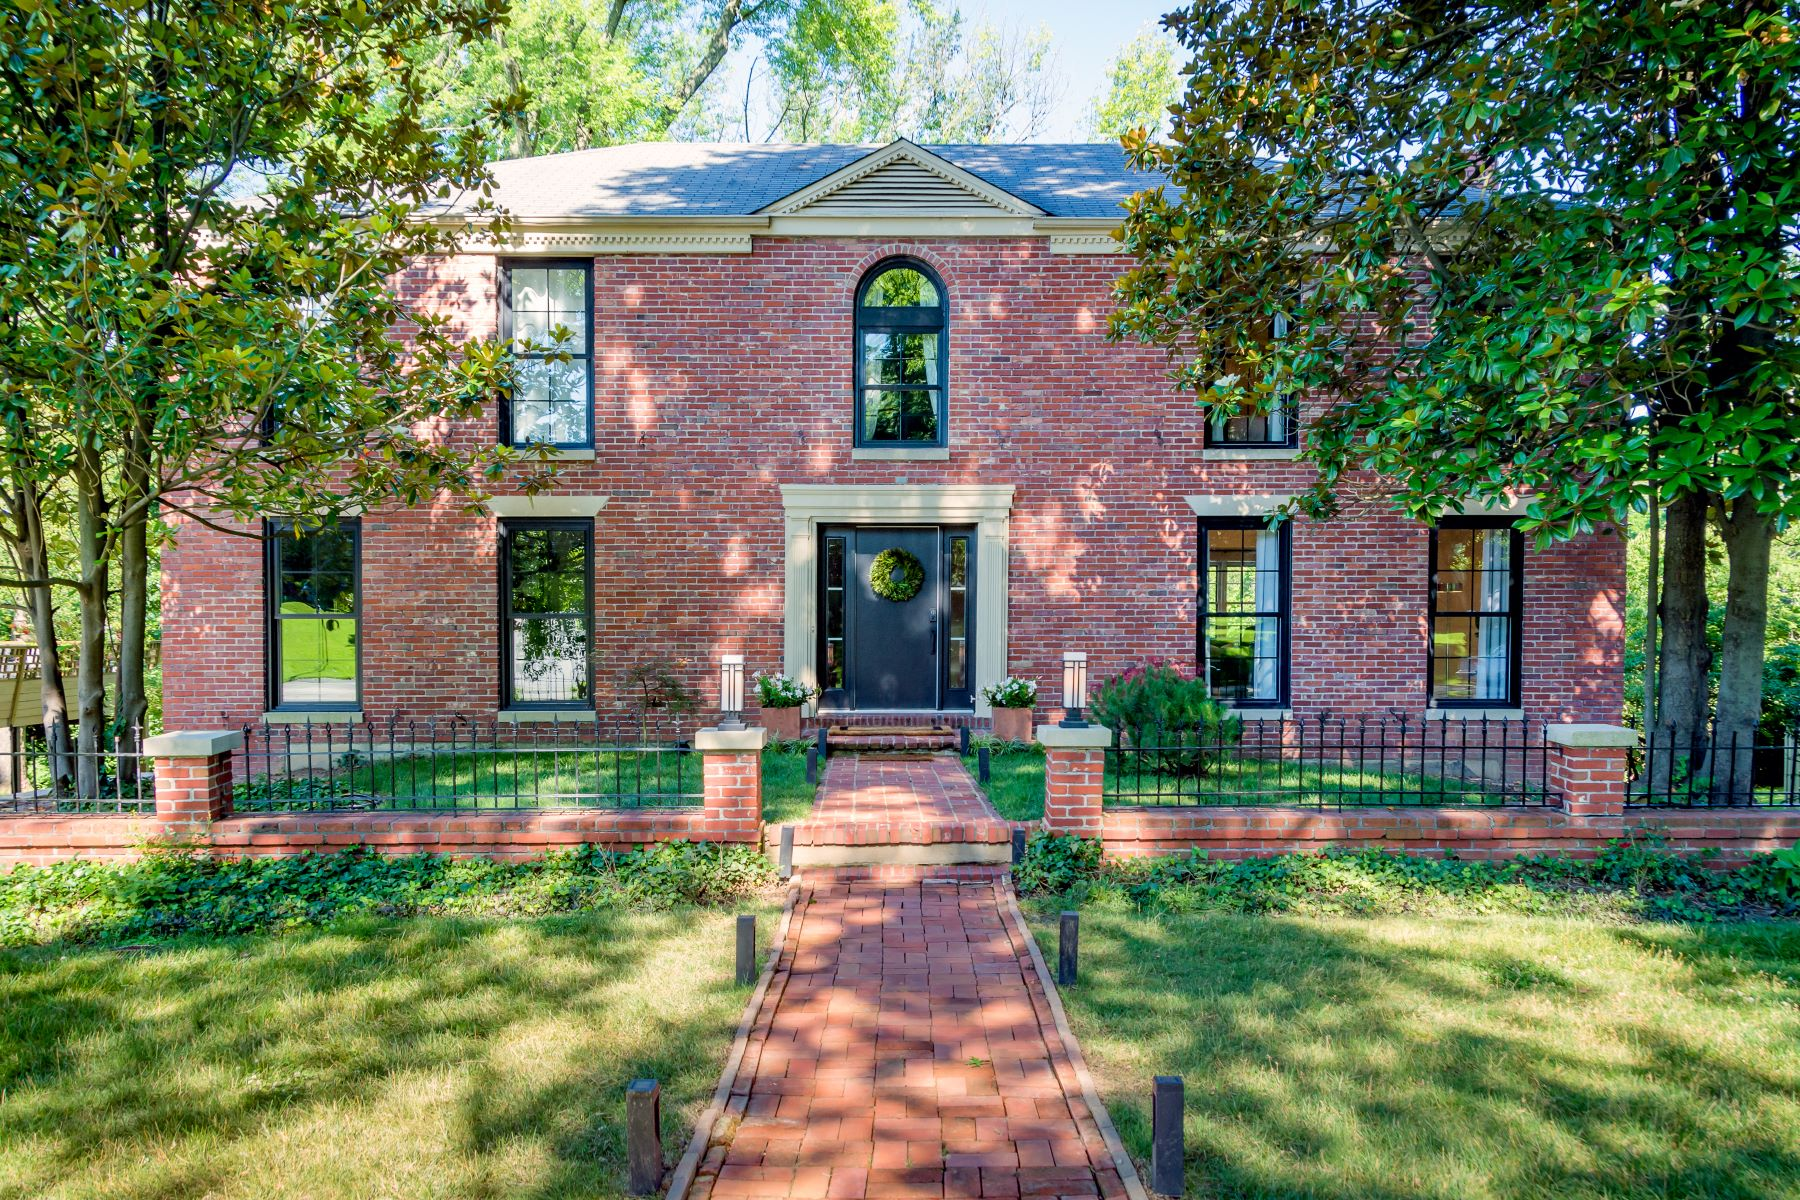 Property for Sale at Classic Yet Modern 2-Story in Beautiful Ladue 43 Granada Way Ladue, Missouri 63124 United States